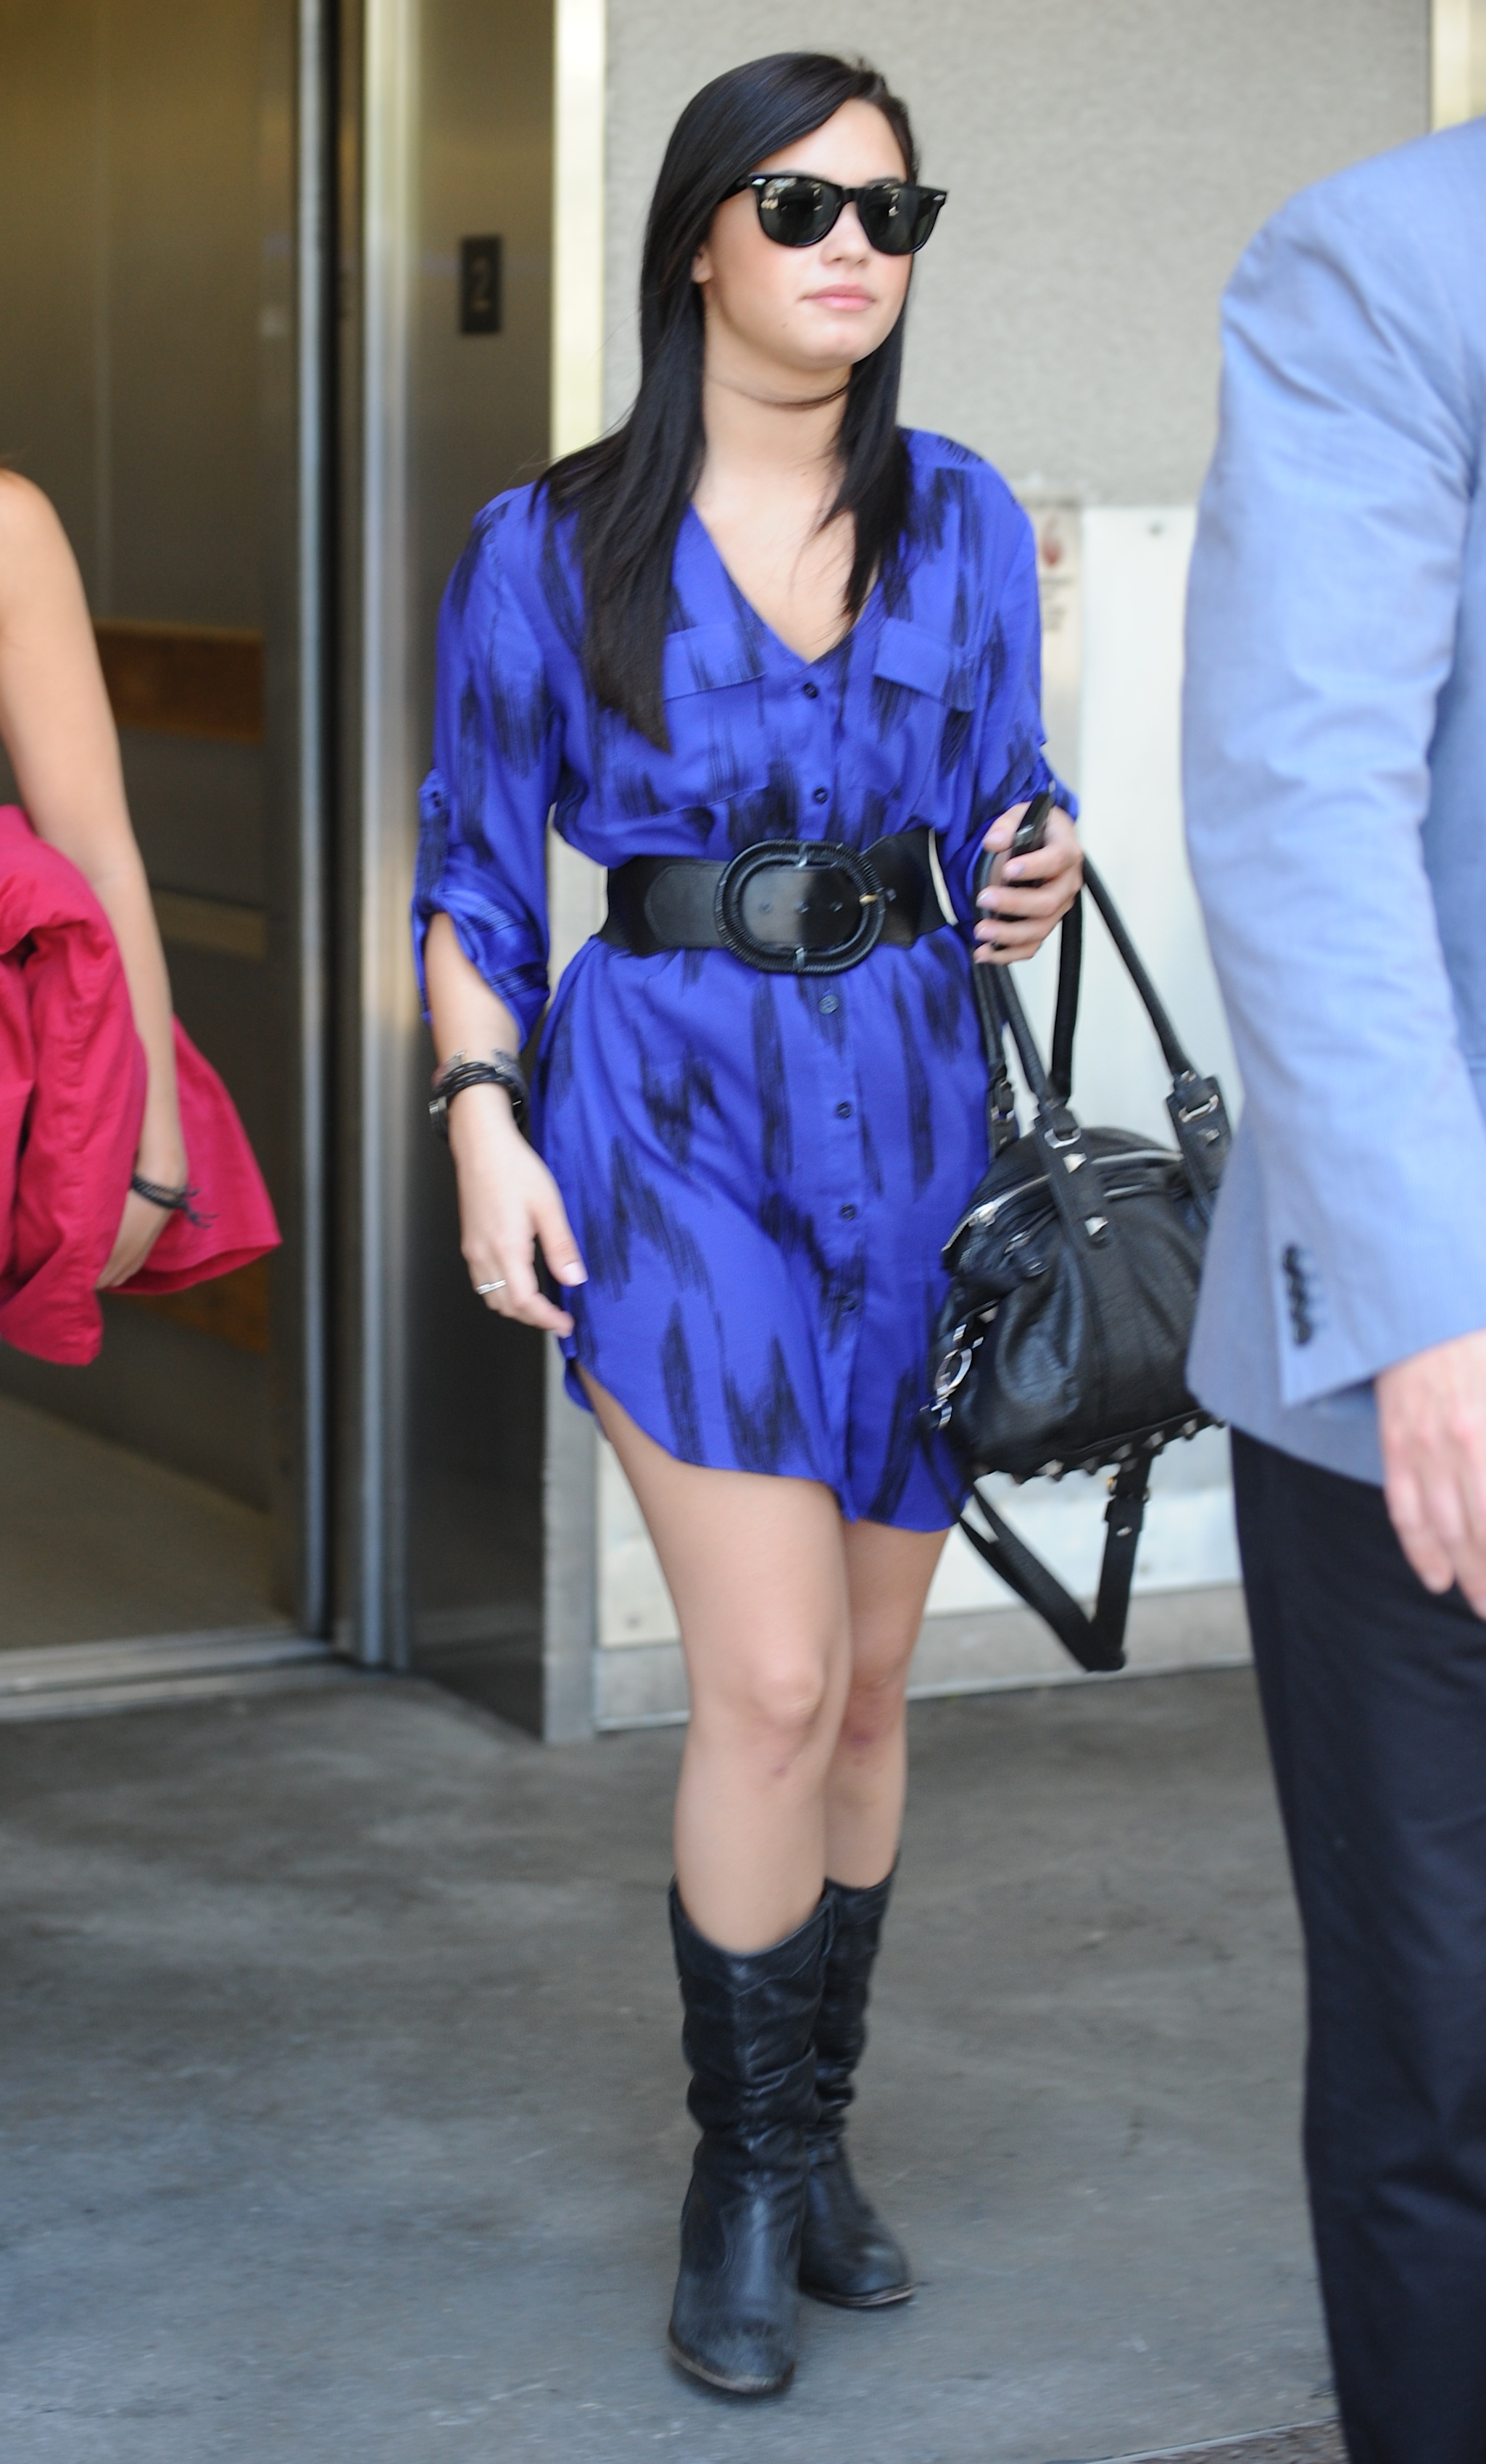 51290_Demi_Lovato_arrives_into_LAX_Airport_002_122_231lo.jpg